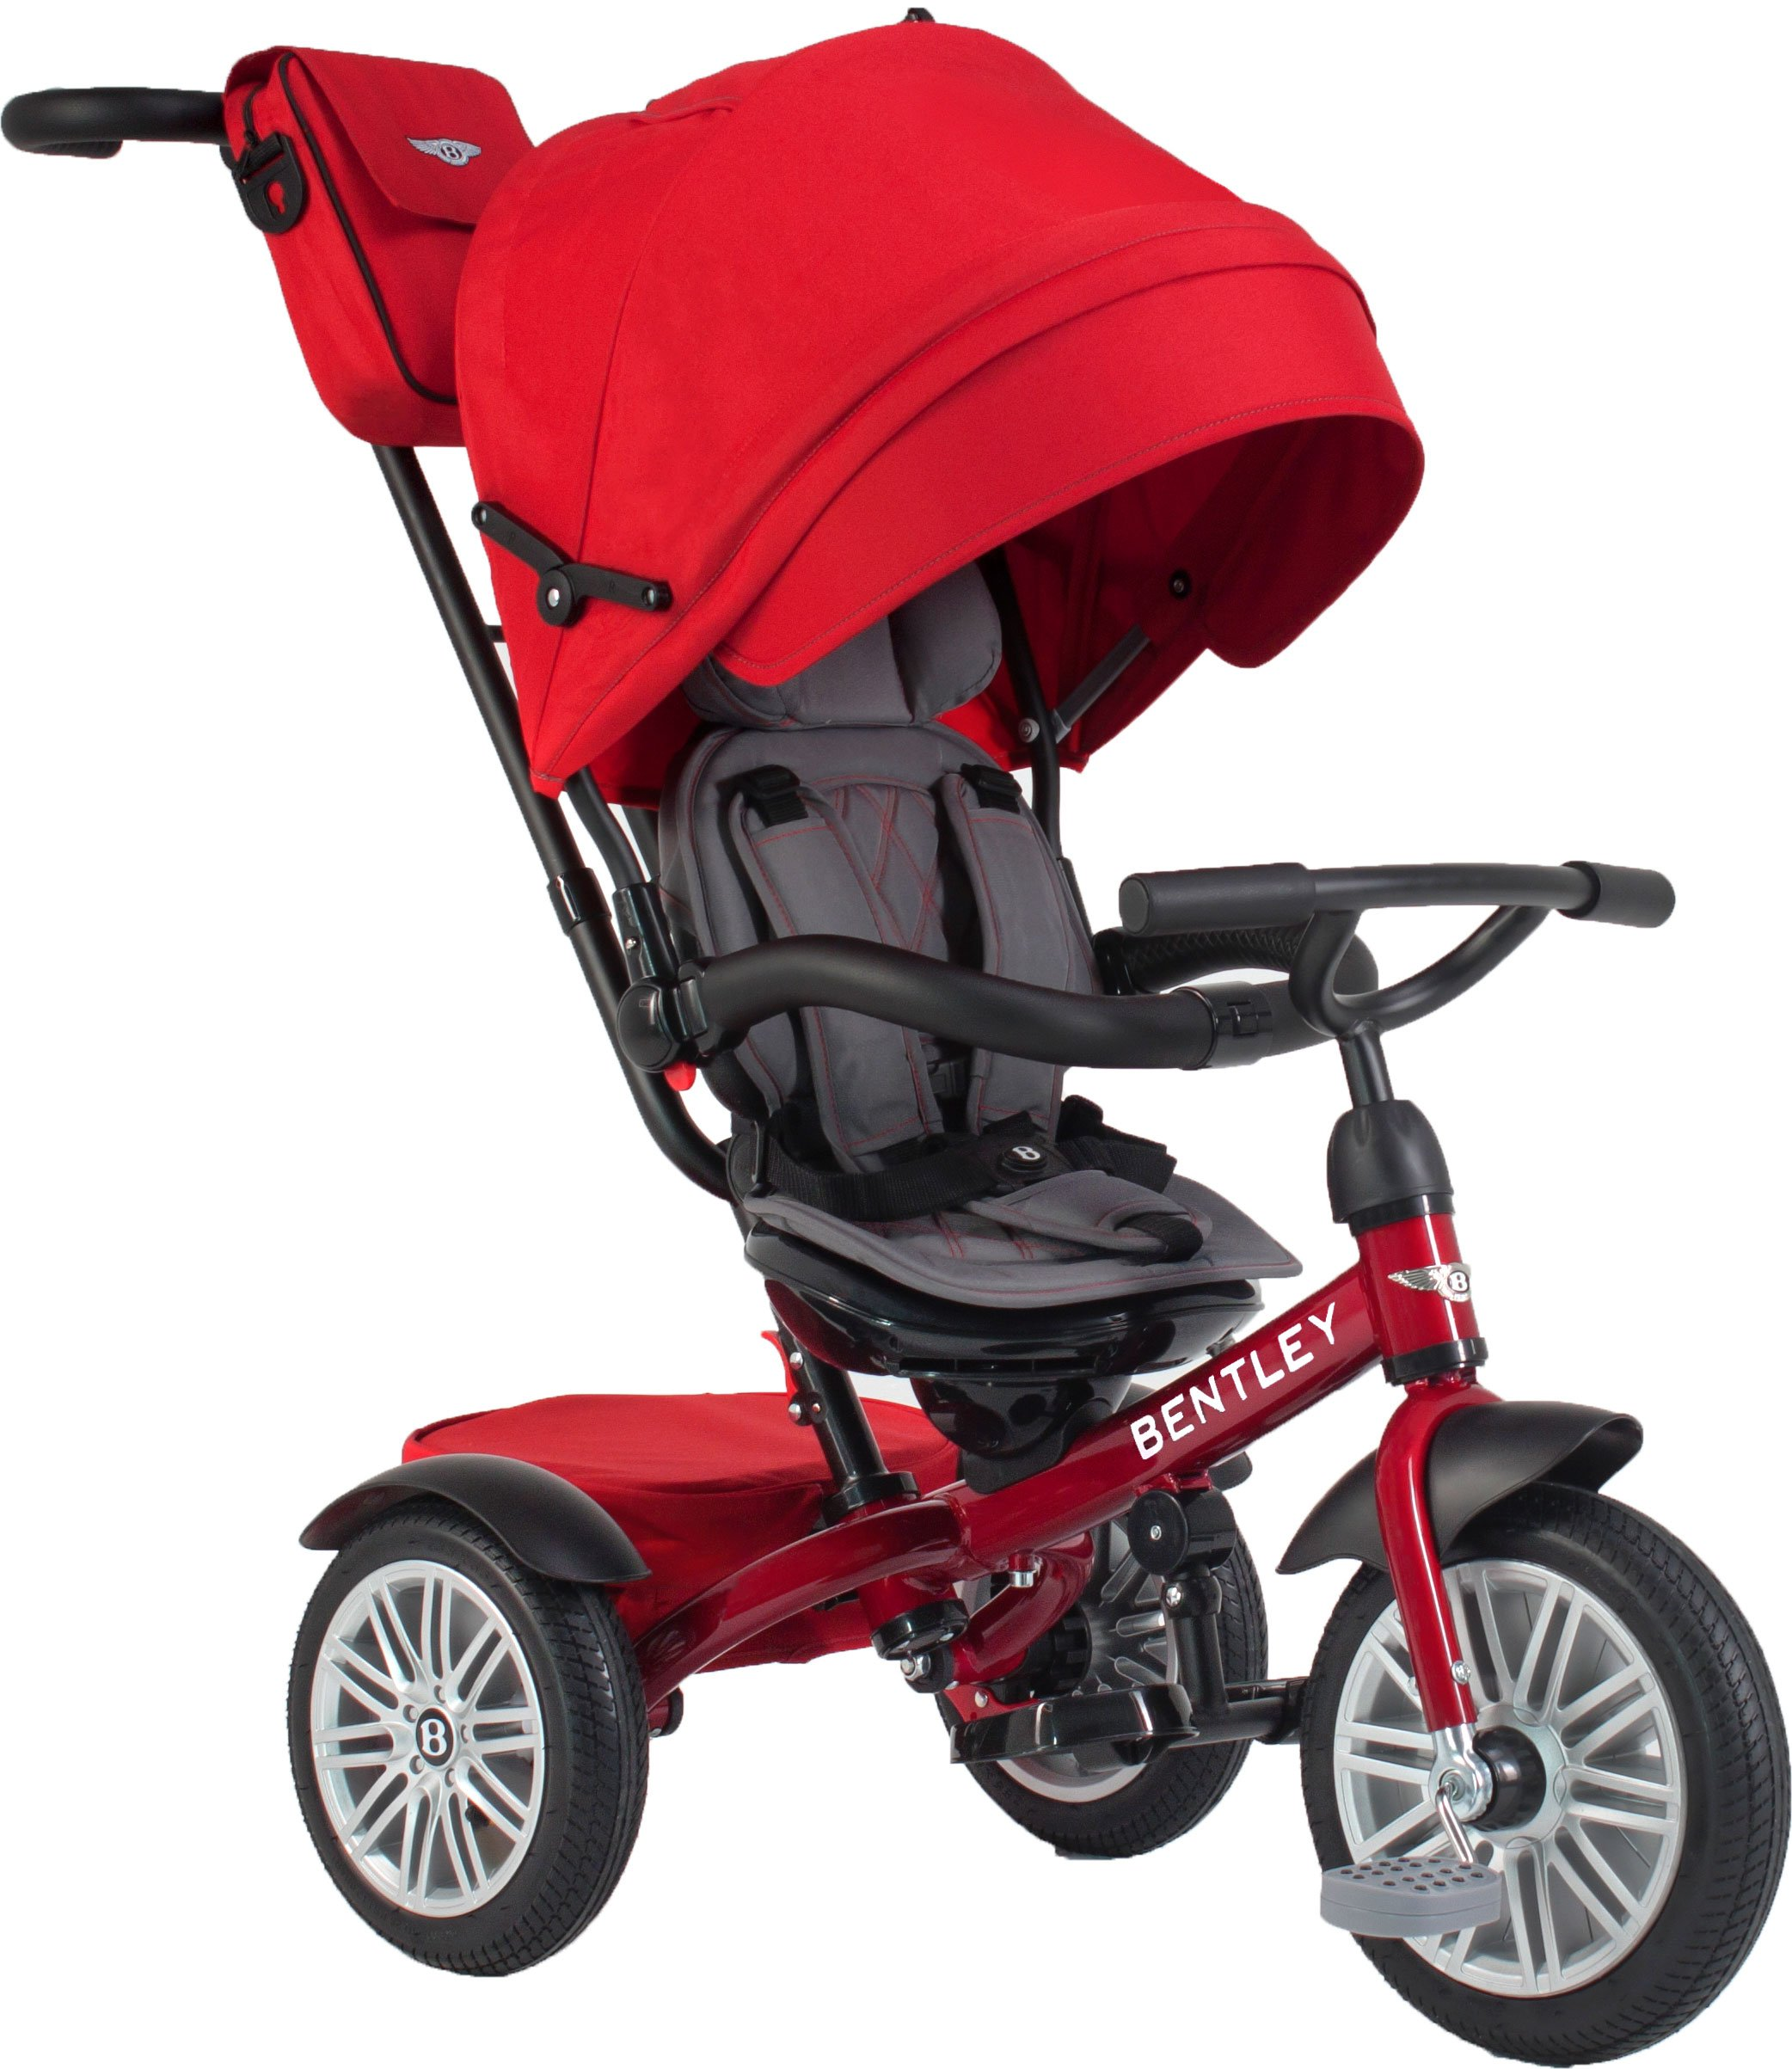 Bentley Toddler Stroller / Trike (Dragon Red) by Bentley